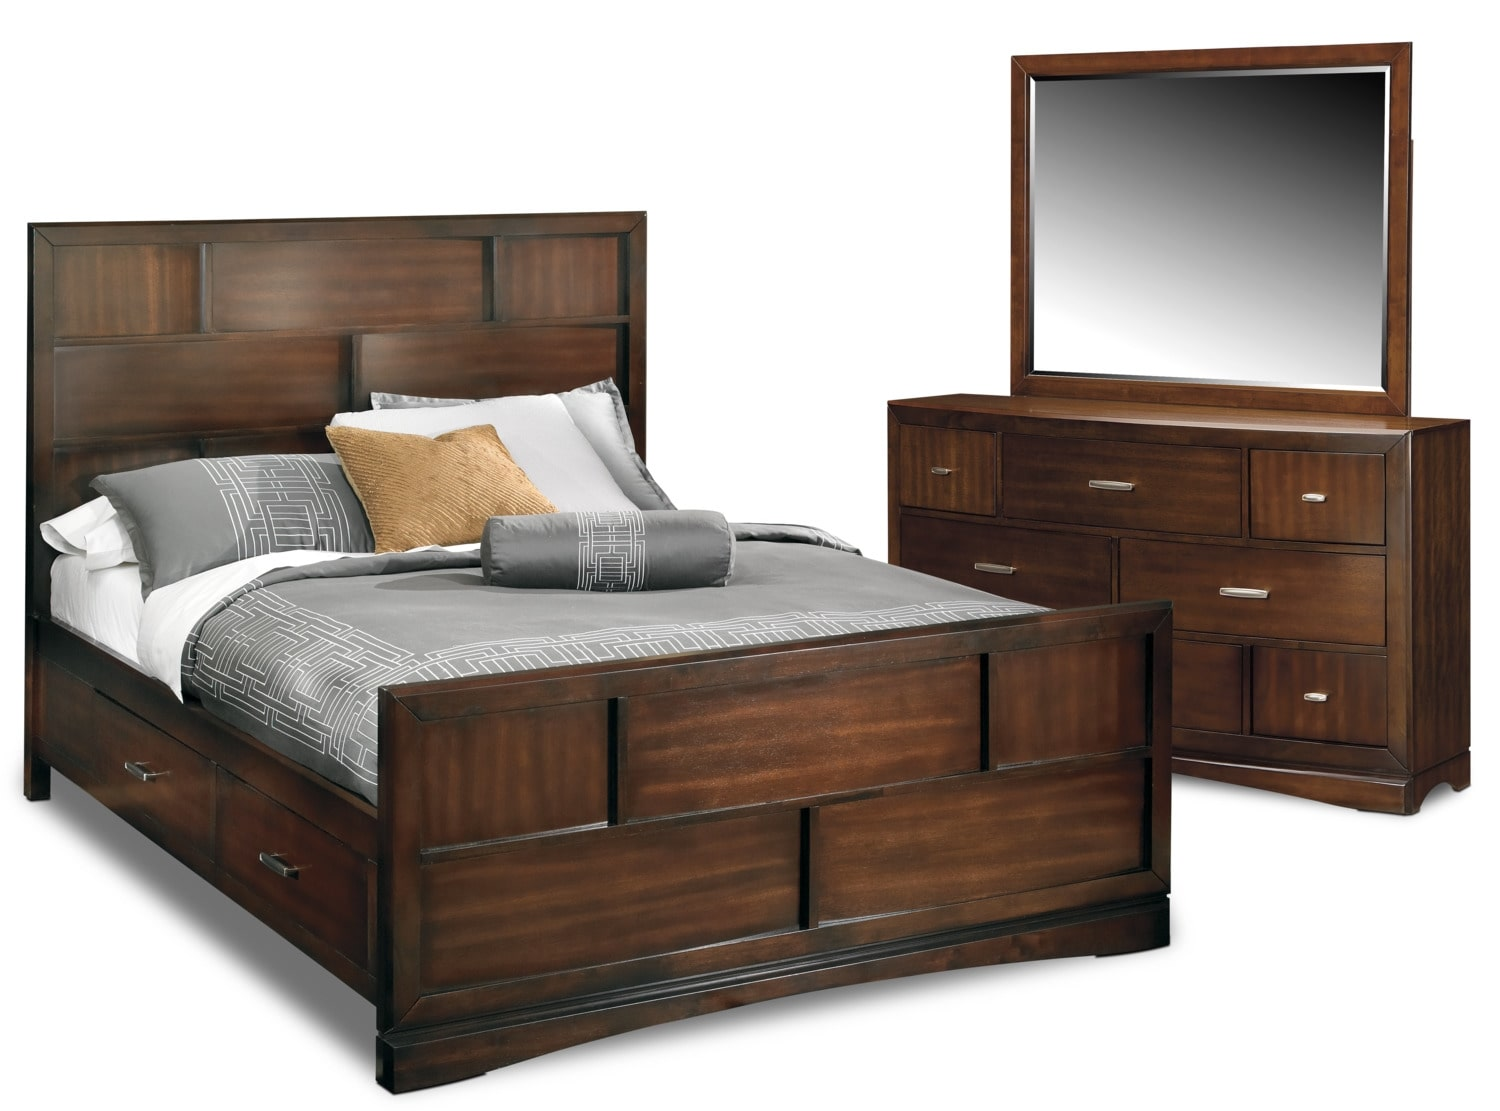 Bedroom Furniture - Toronto 5-Piece Storage Bedroom Set with Dresser and Mirror